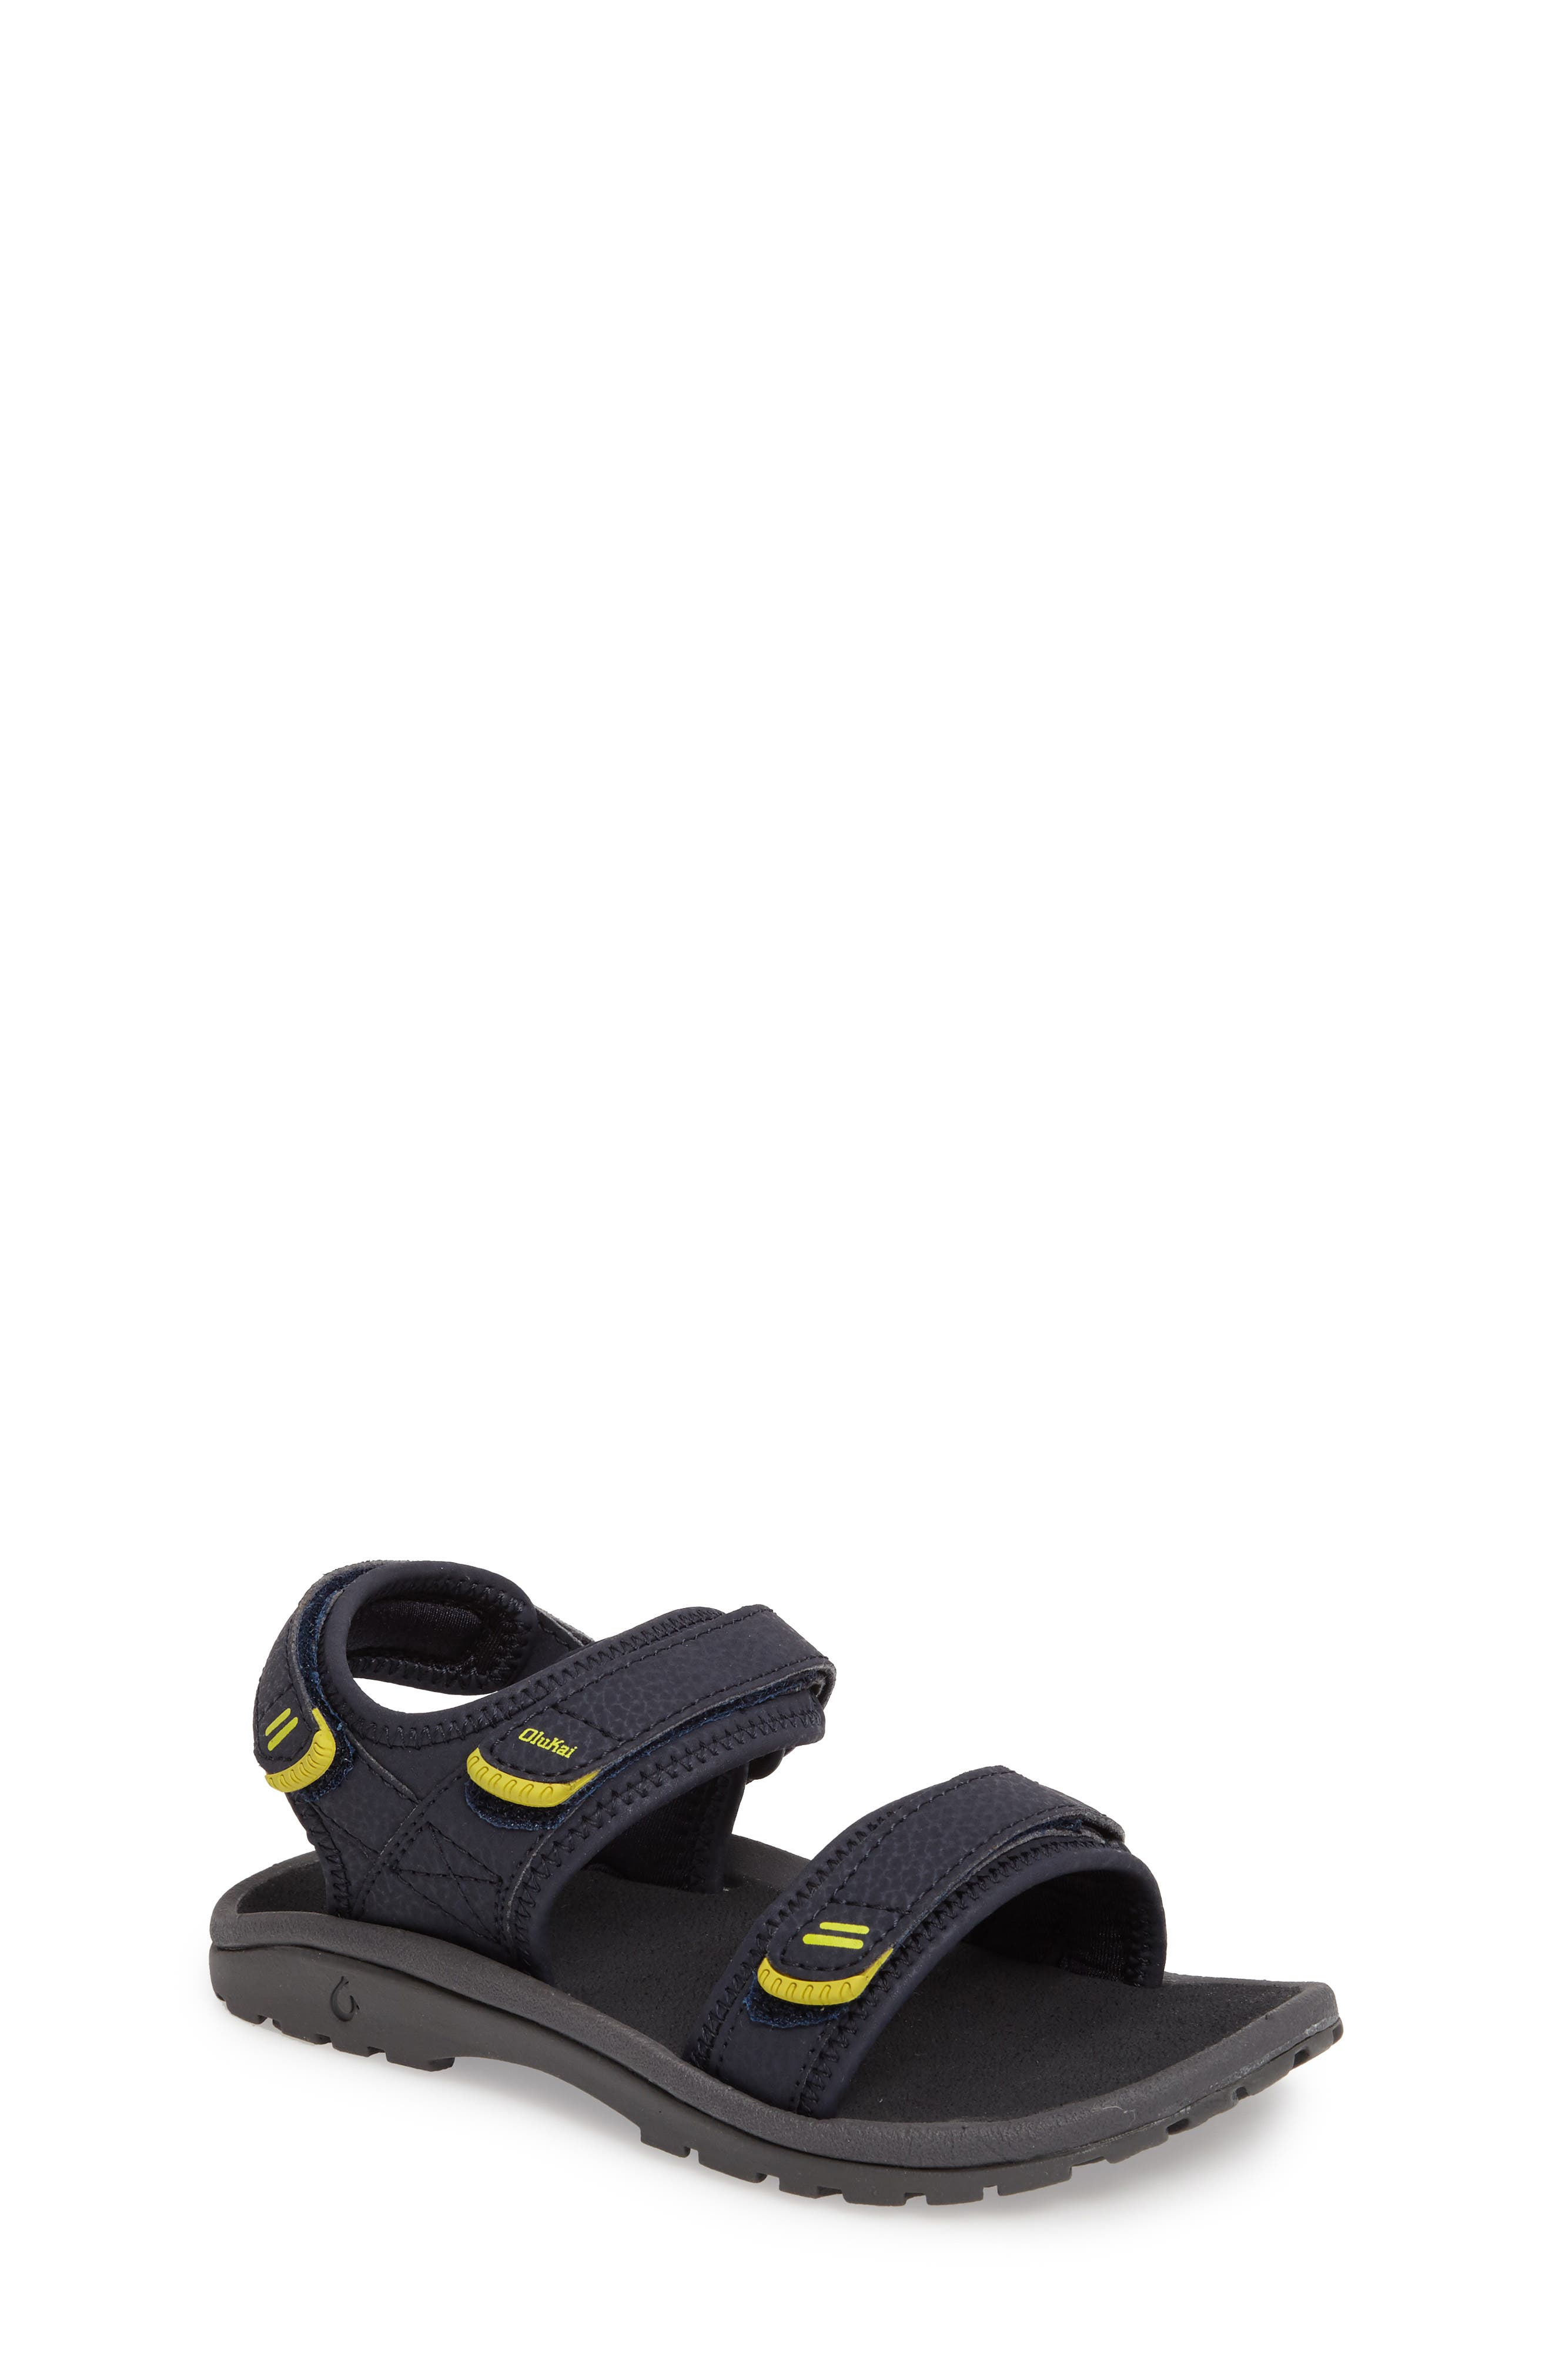 Alternate Image 1 Selected - OluKai Pahu Sandal (Toddler, Little Kid & Big Kid)